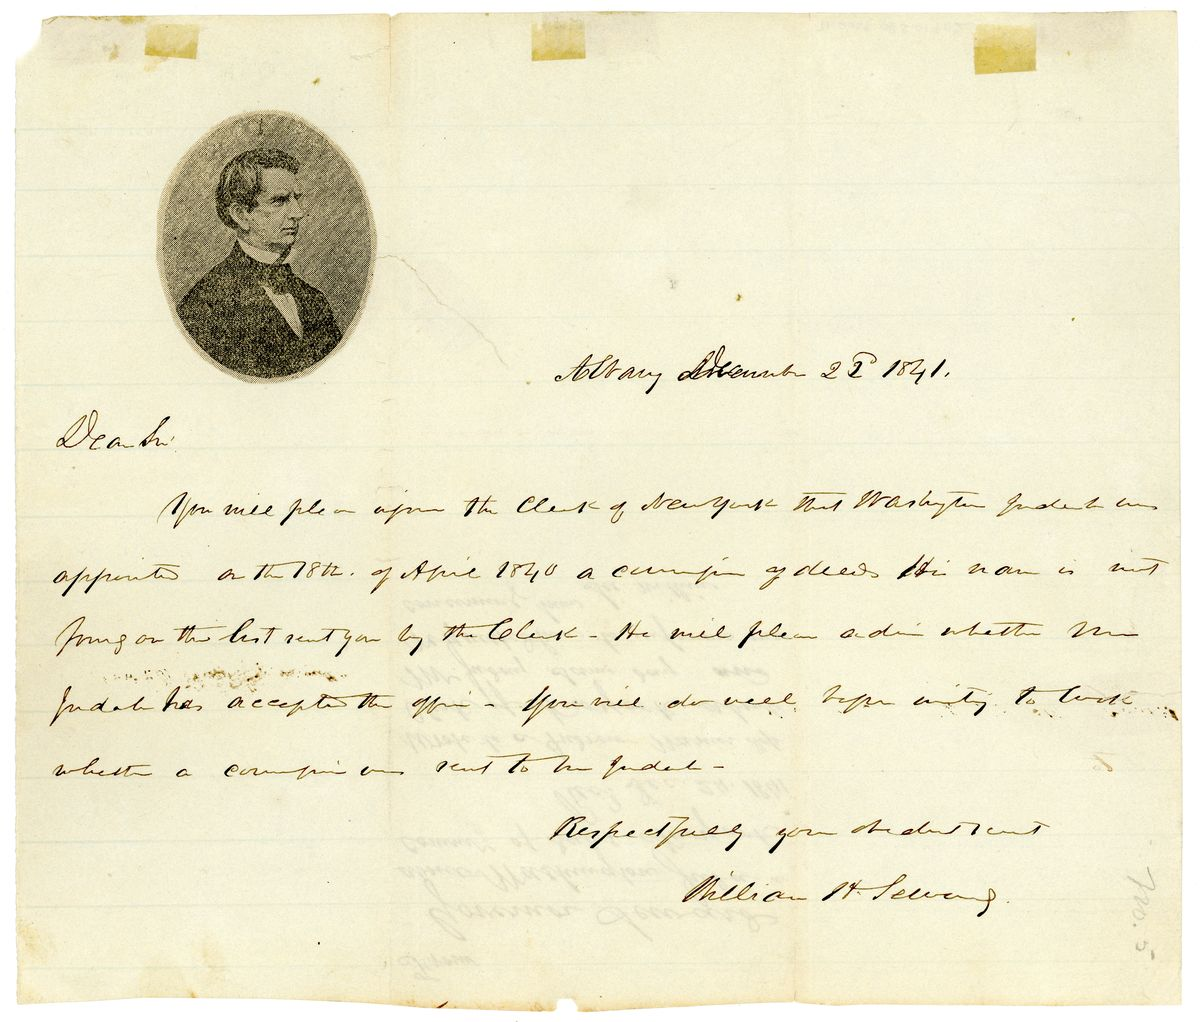 Image: Letter from William Henry Seward to Andrew Warner